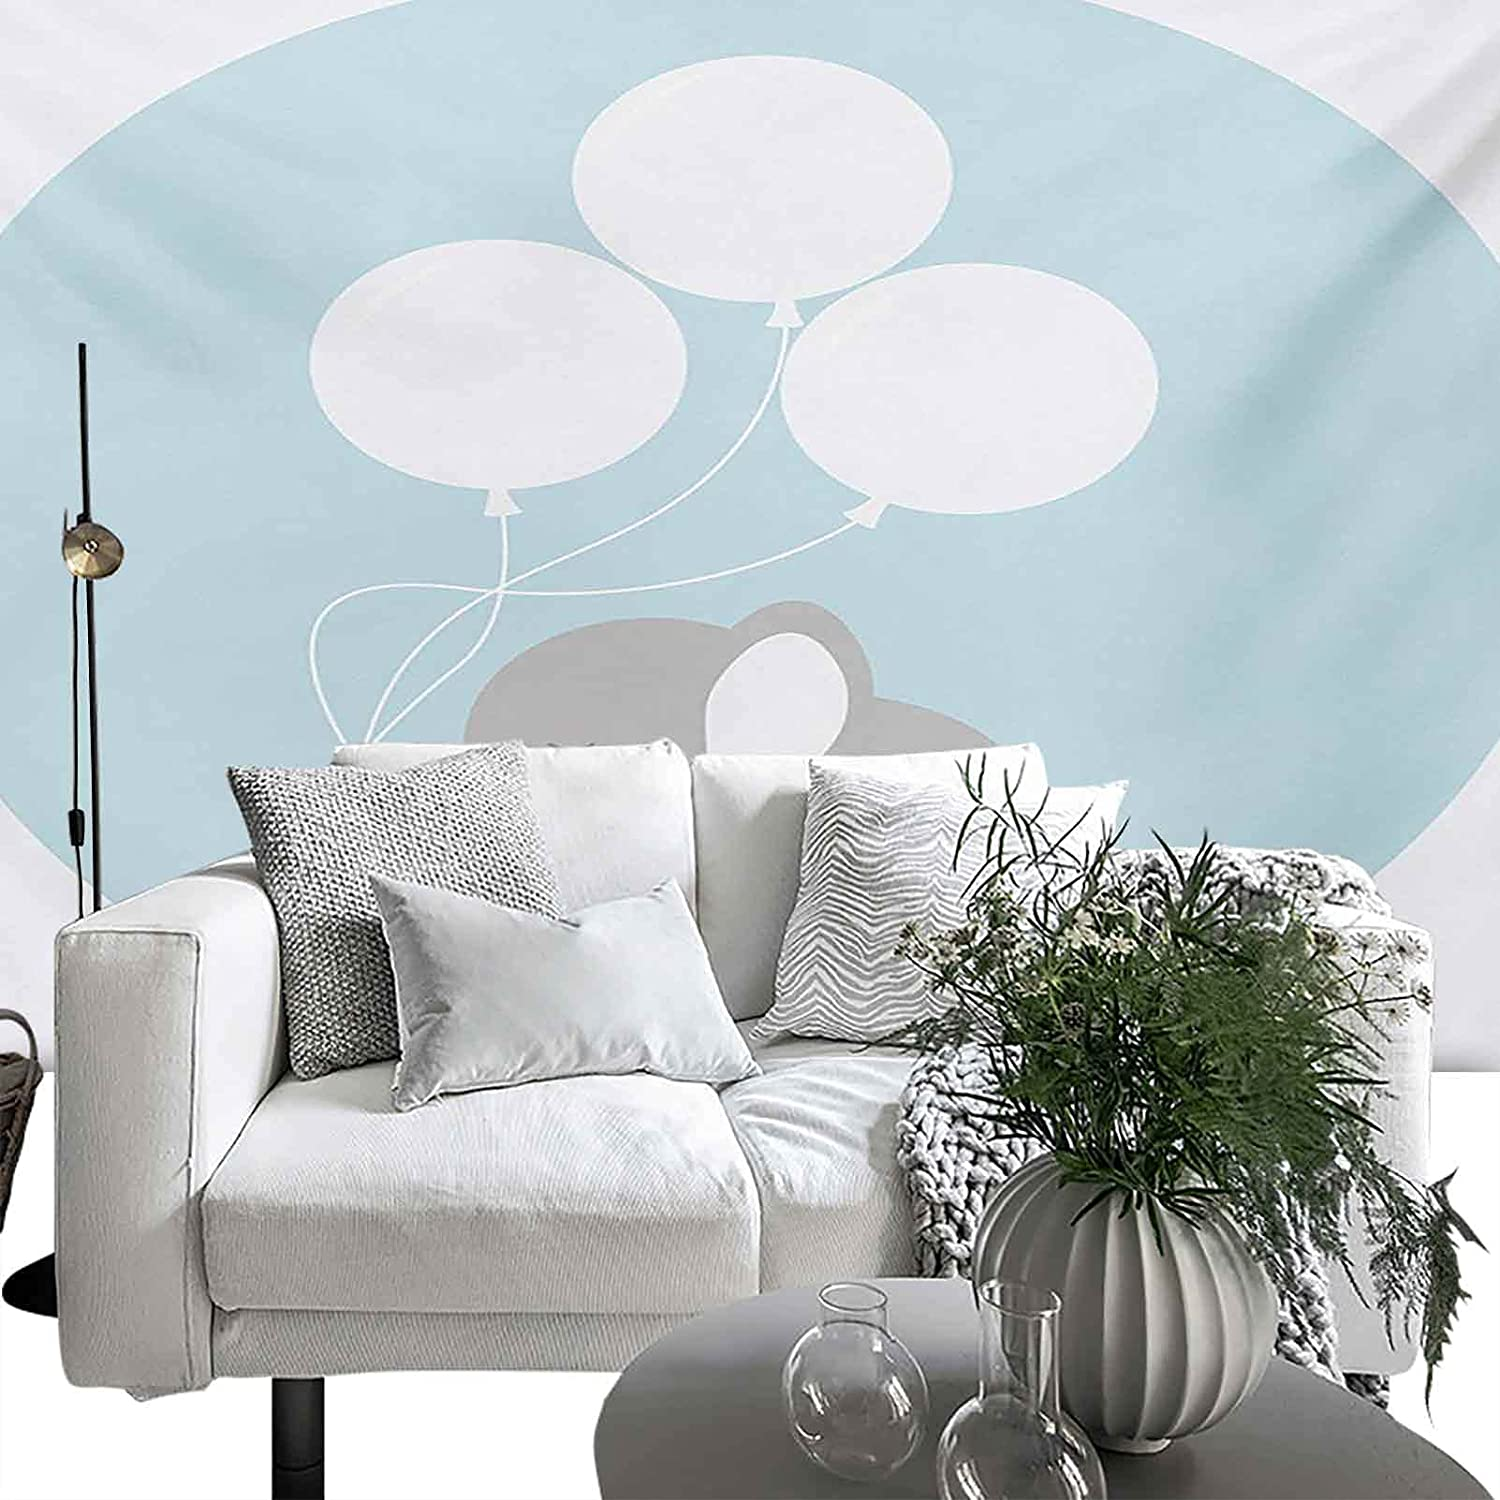 Self-Adhesive Wallpaper Wall Decoration Max 90% OFF Baby Nursery with Little A surprise price is realized